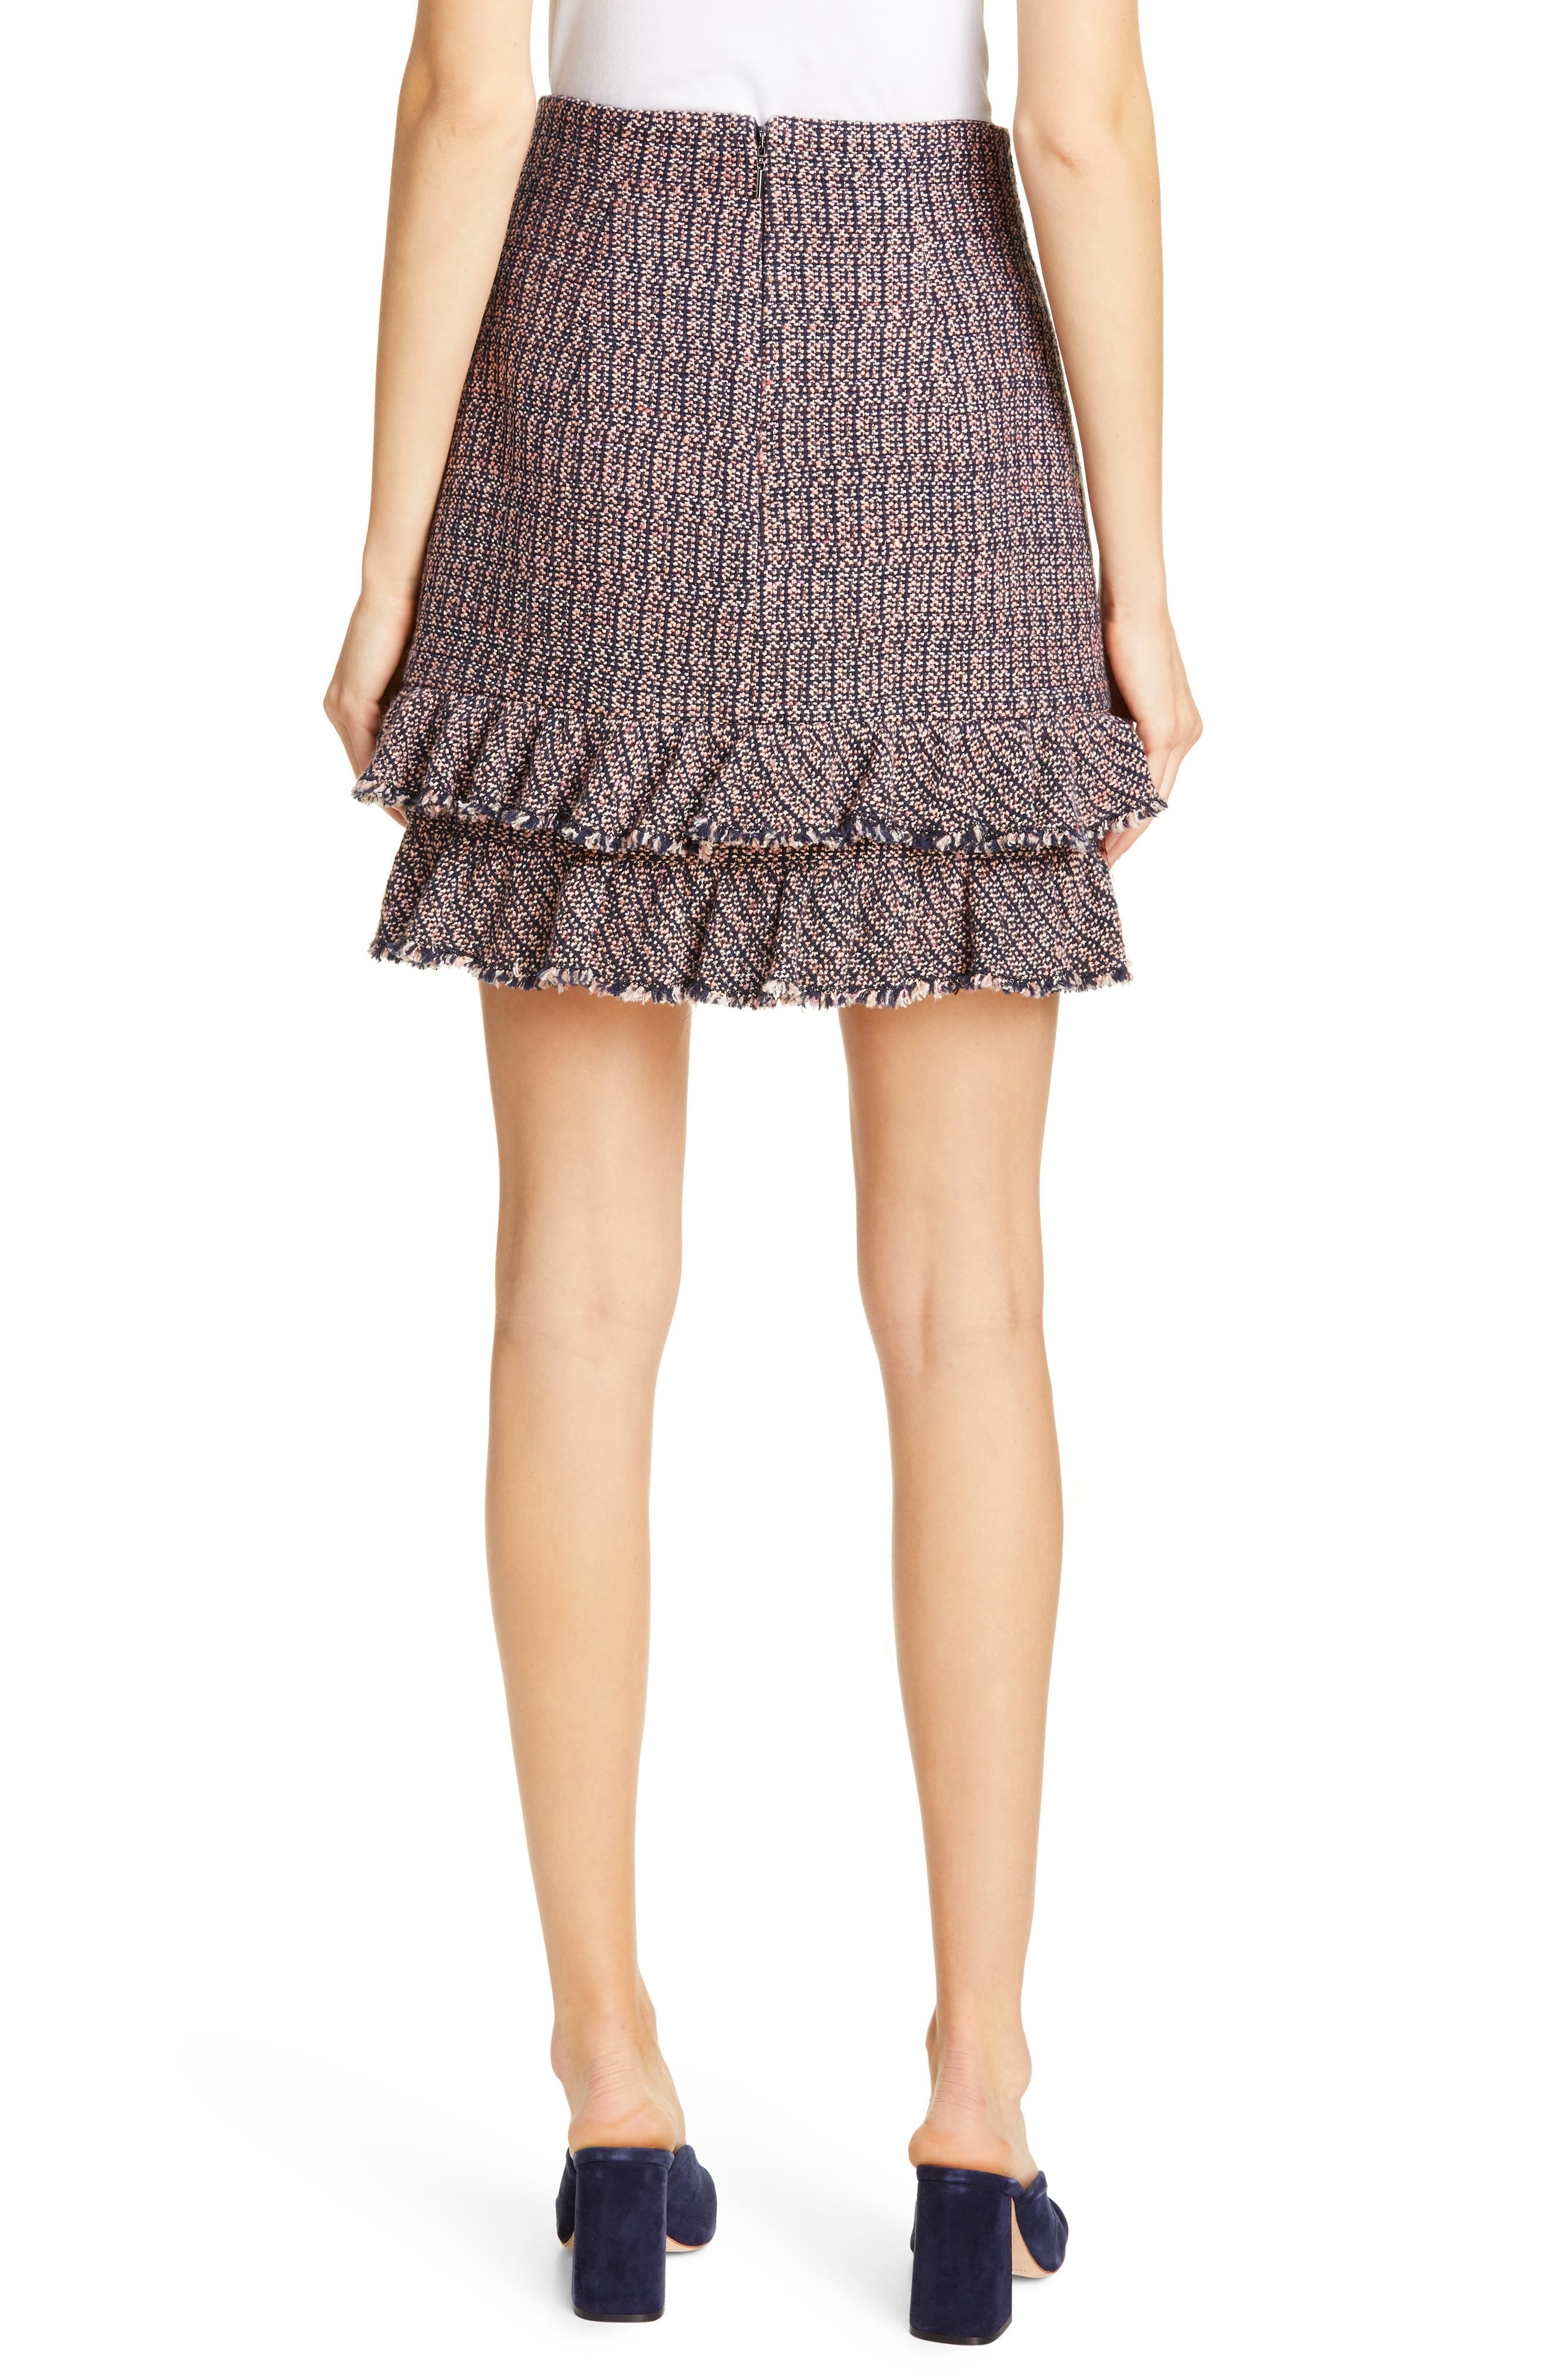 REBECCA TAYLOR, Ruffle Hem Tweed Miniskirt, Alternate thumbnail 2, color, PINK/ NAVY COMBO